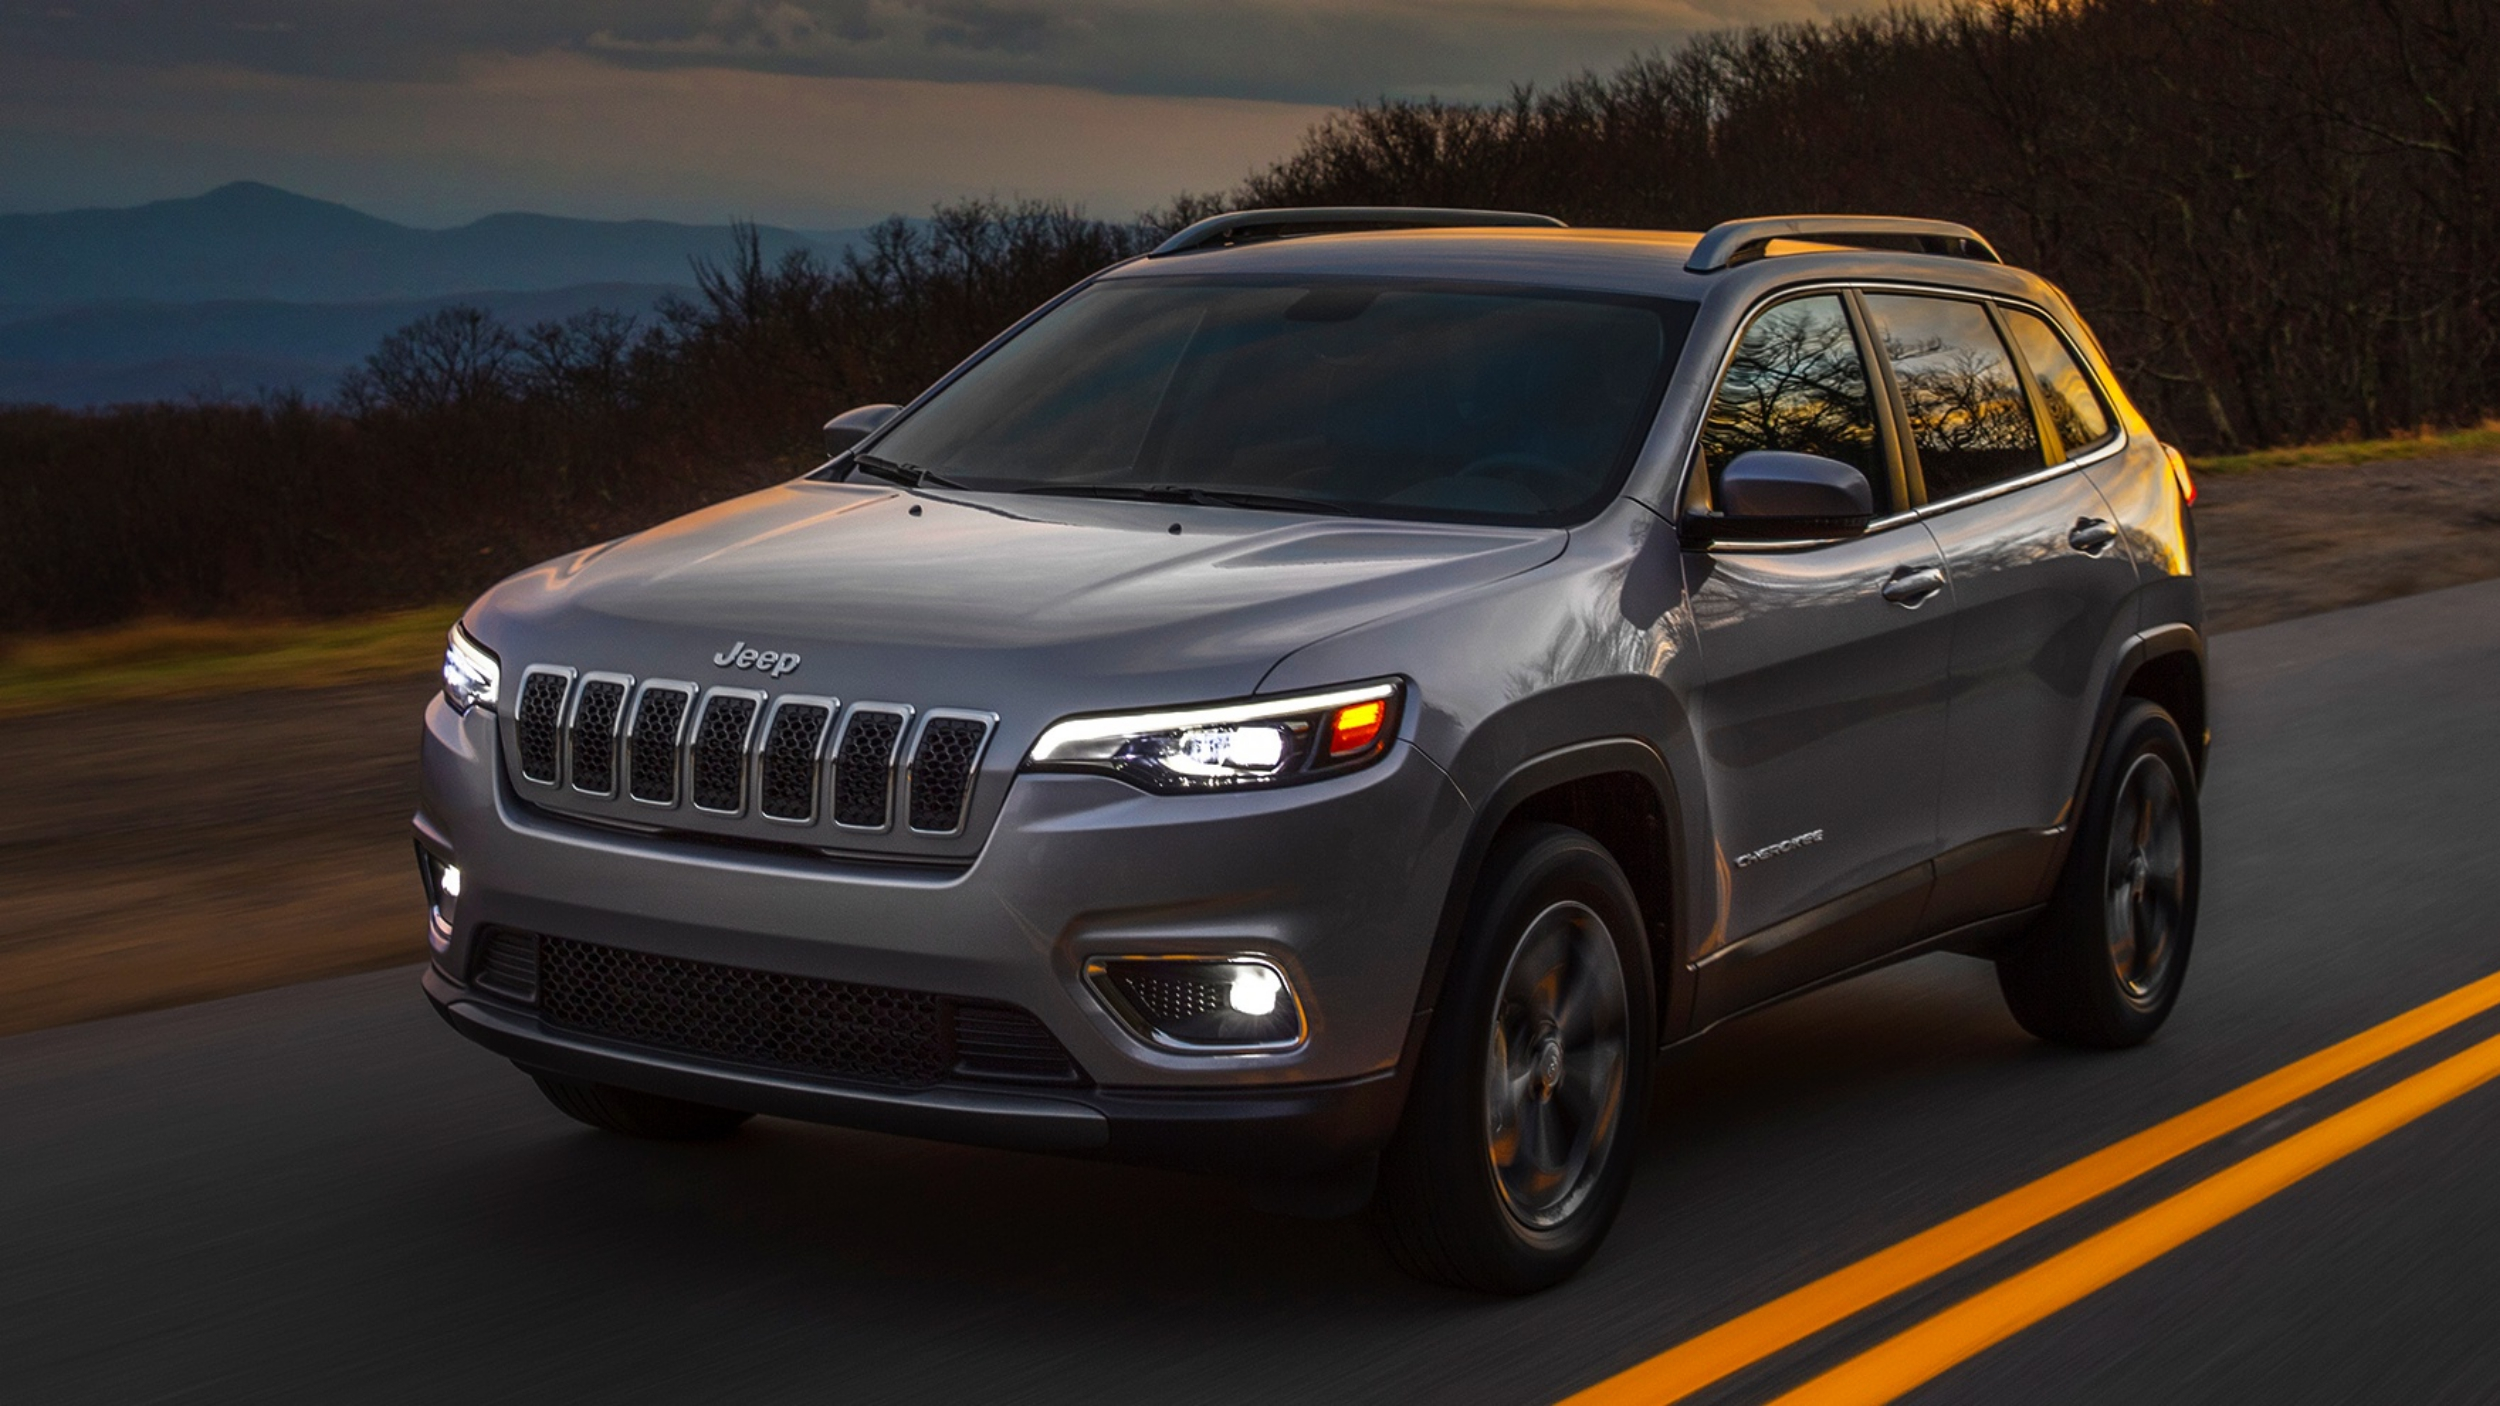 News - 2019 Jeep Cherokee Detailed Properly